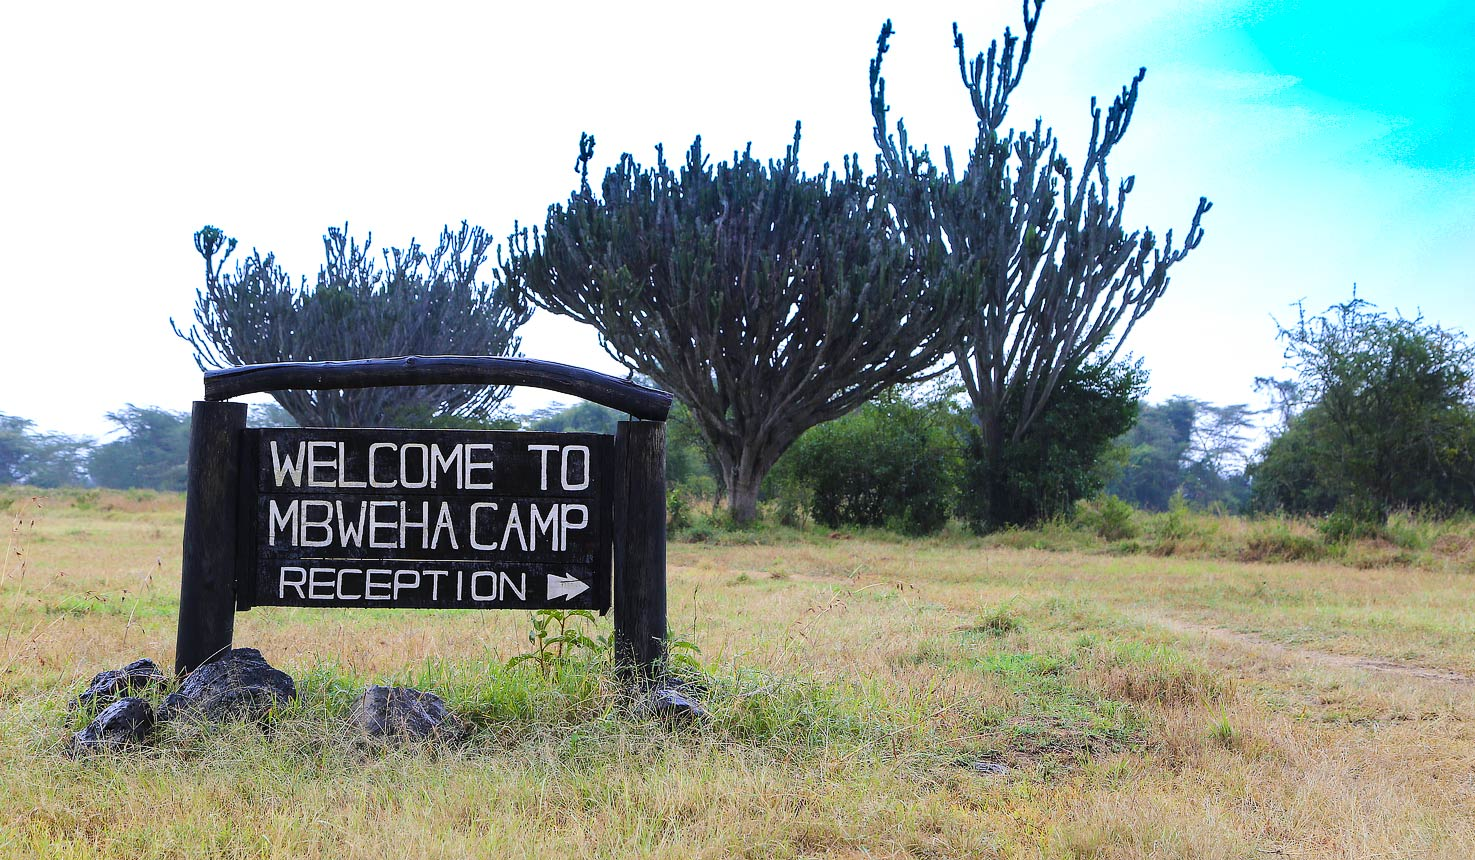 Safari To Mbweha Camp With Africa Travel Resource